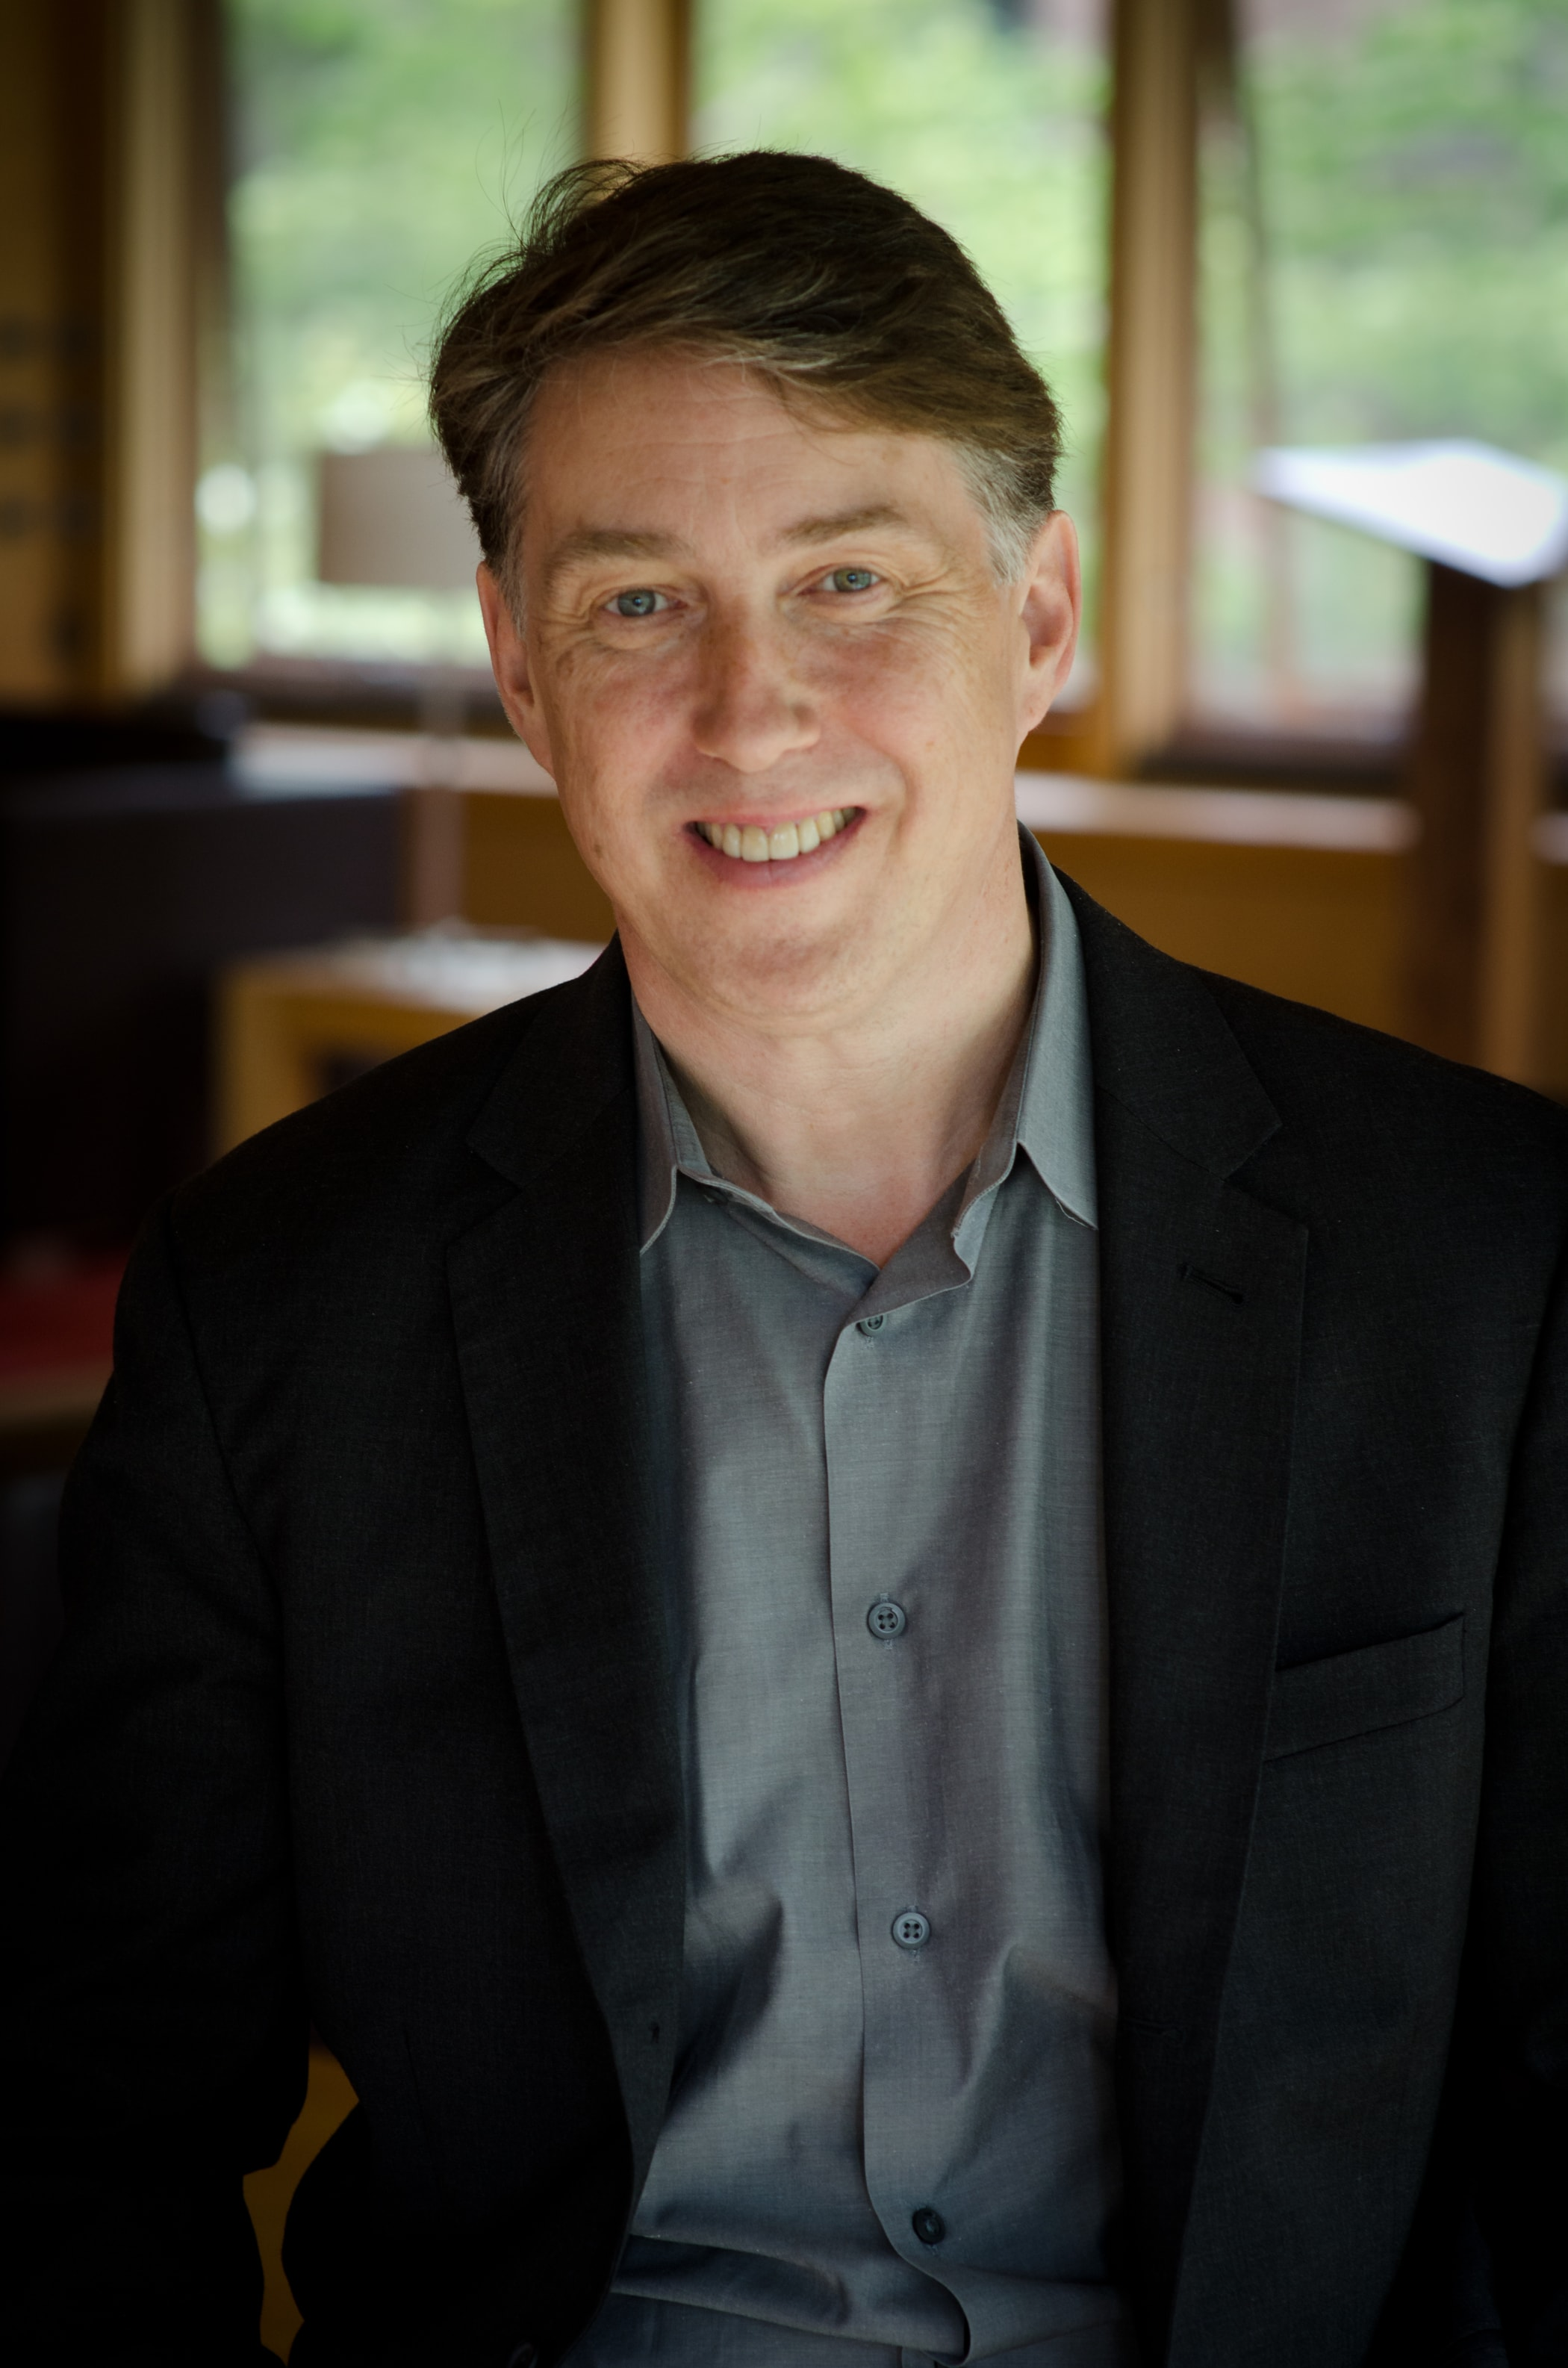 Professor Paul Anastas